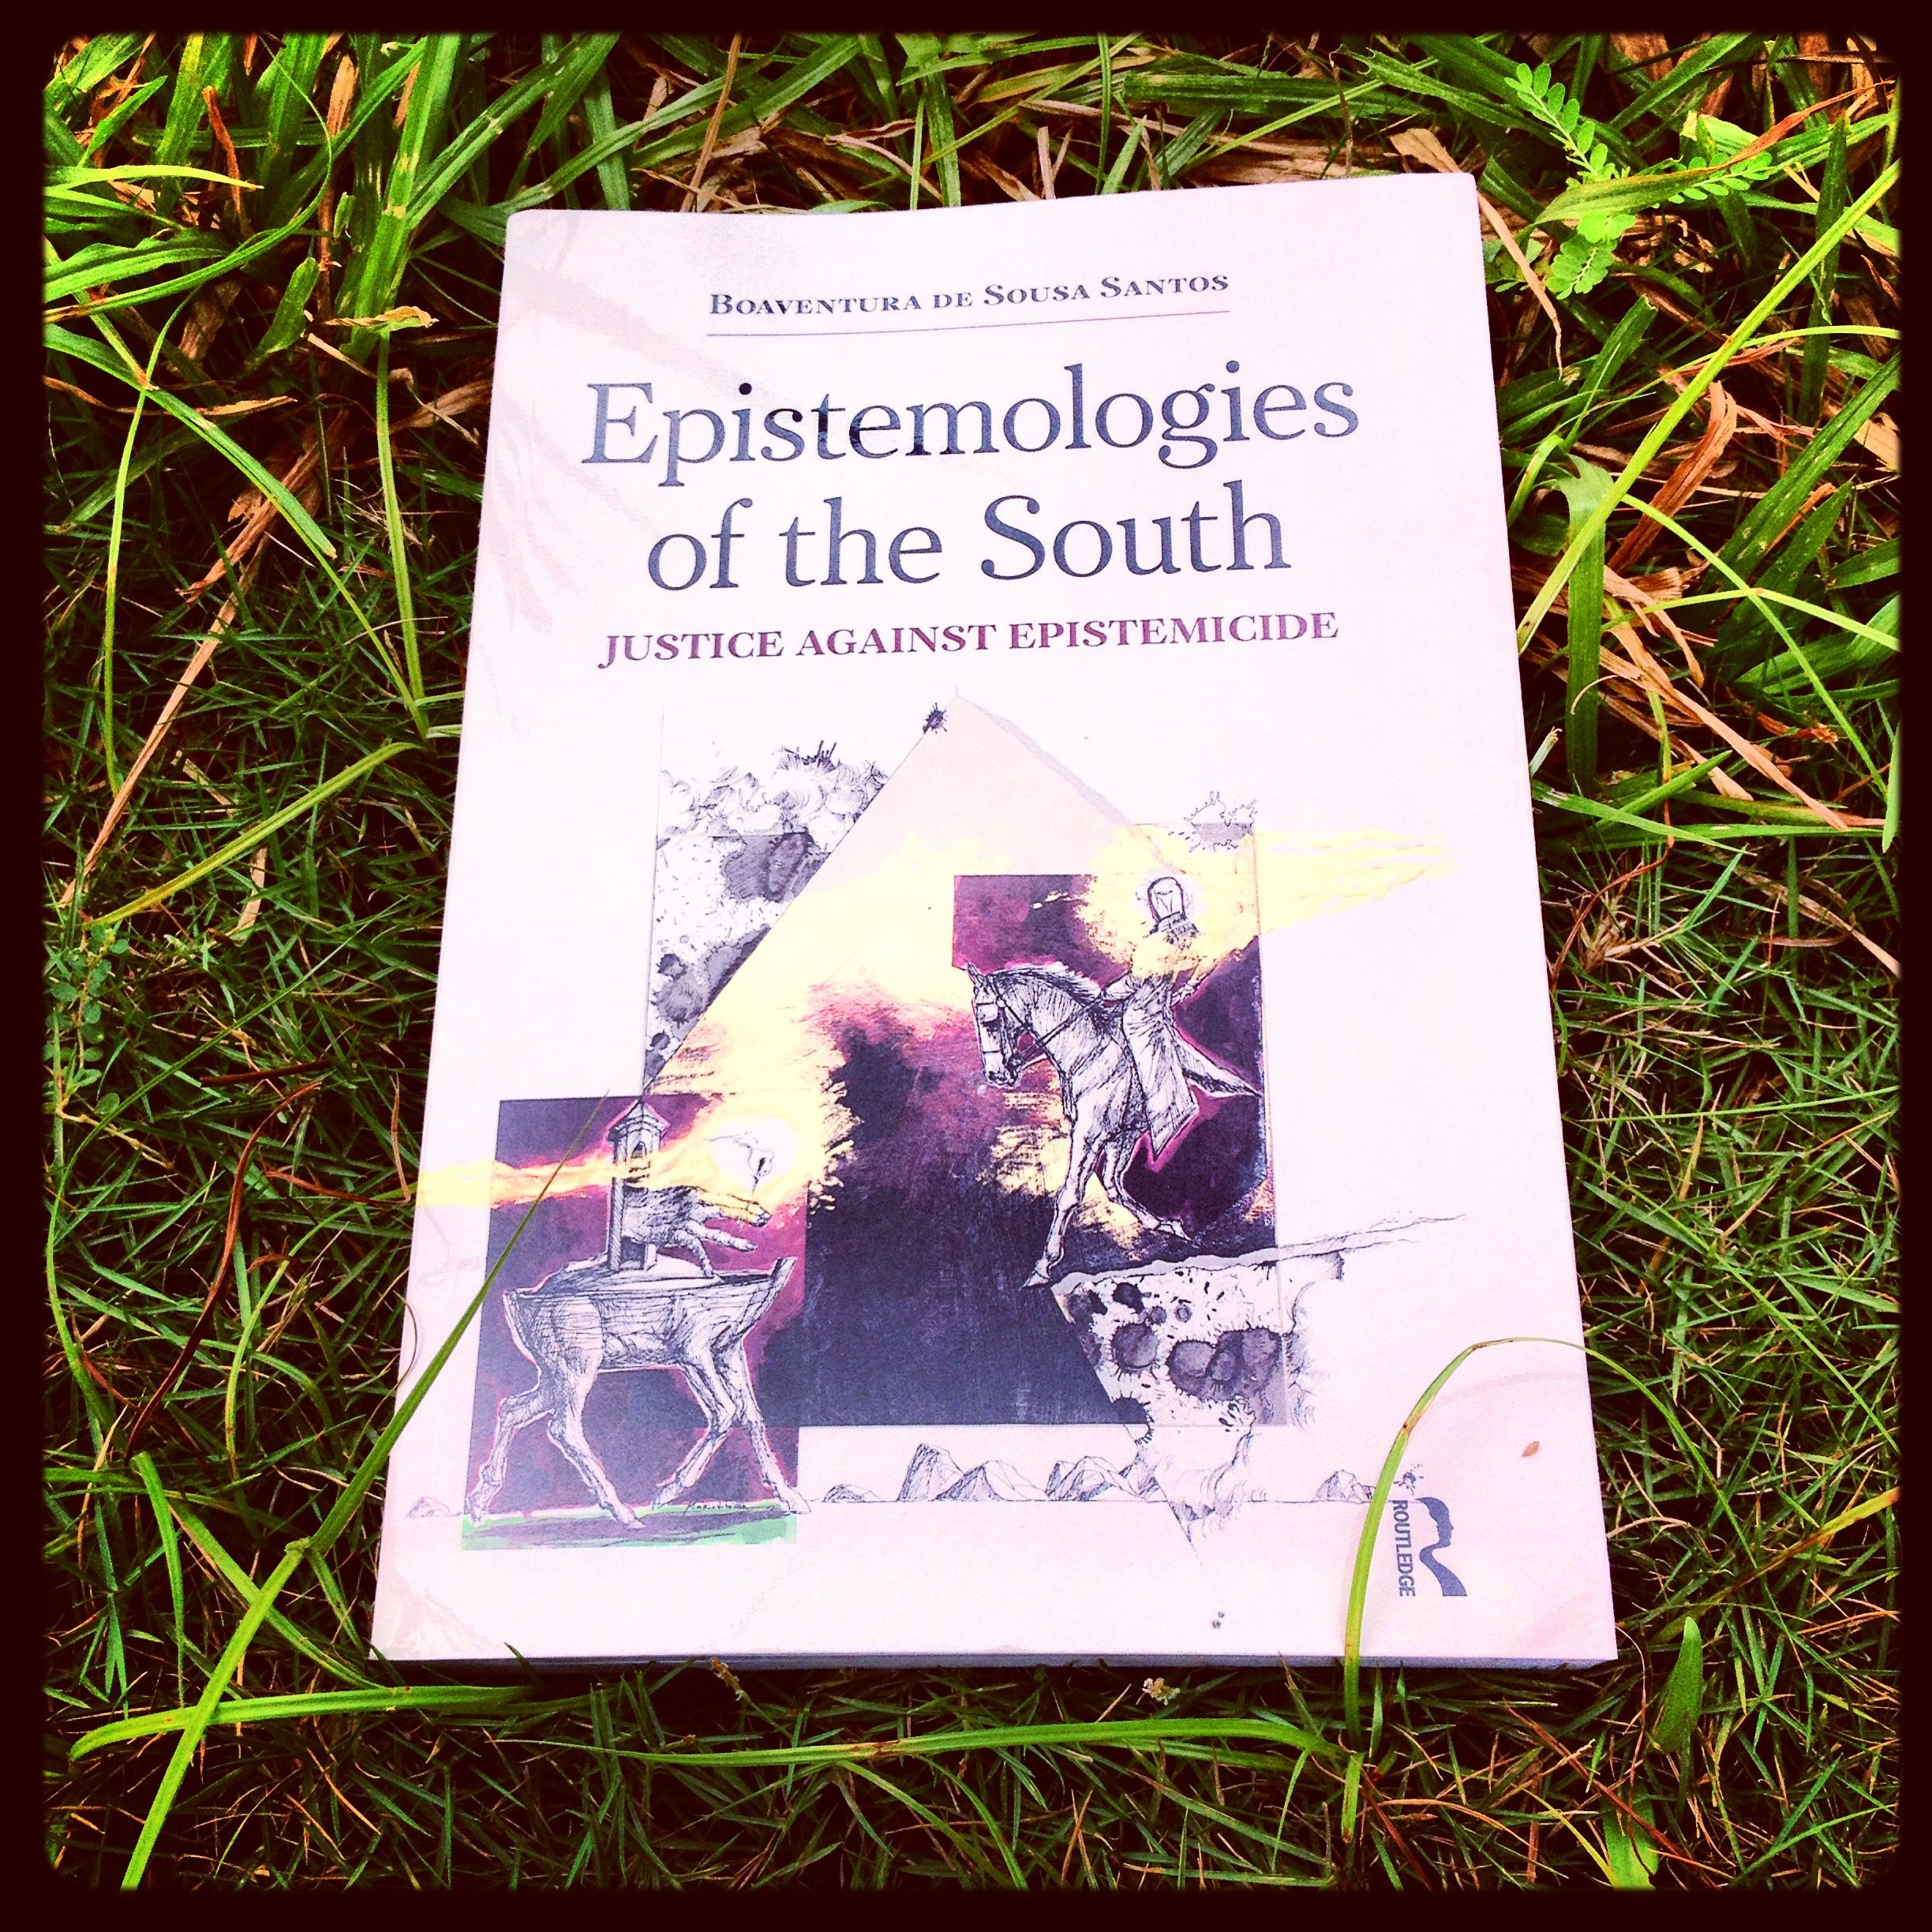 Even More Good Reads! #EpistemologiesOfTheSouth #BoaventuraDeSousaSantos #DecolonialBecoming